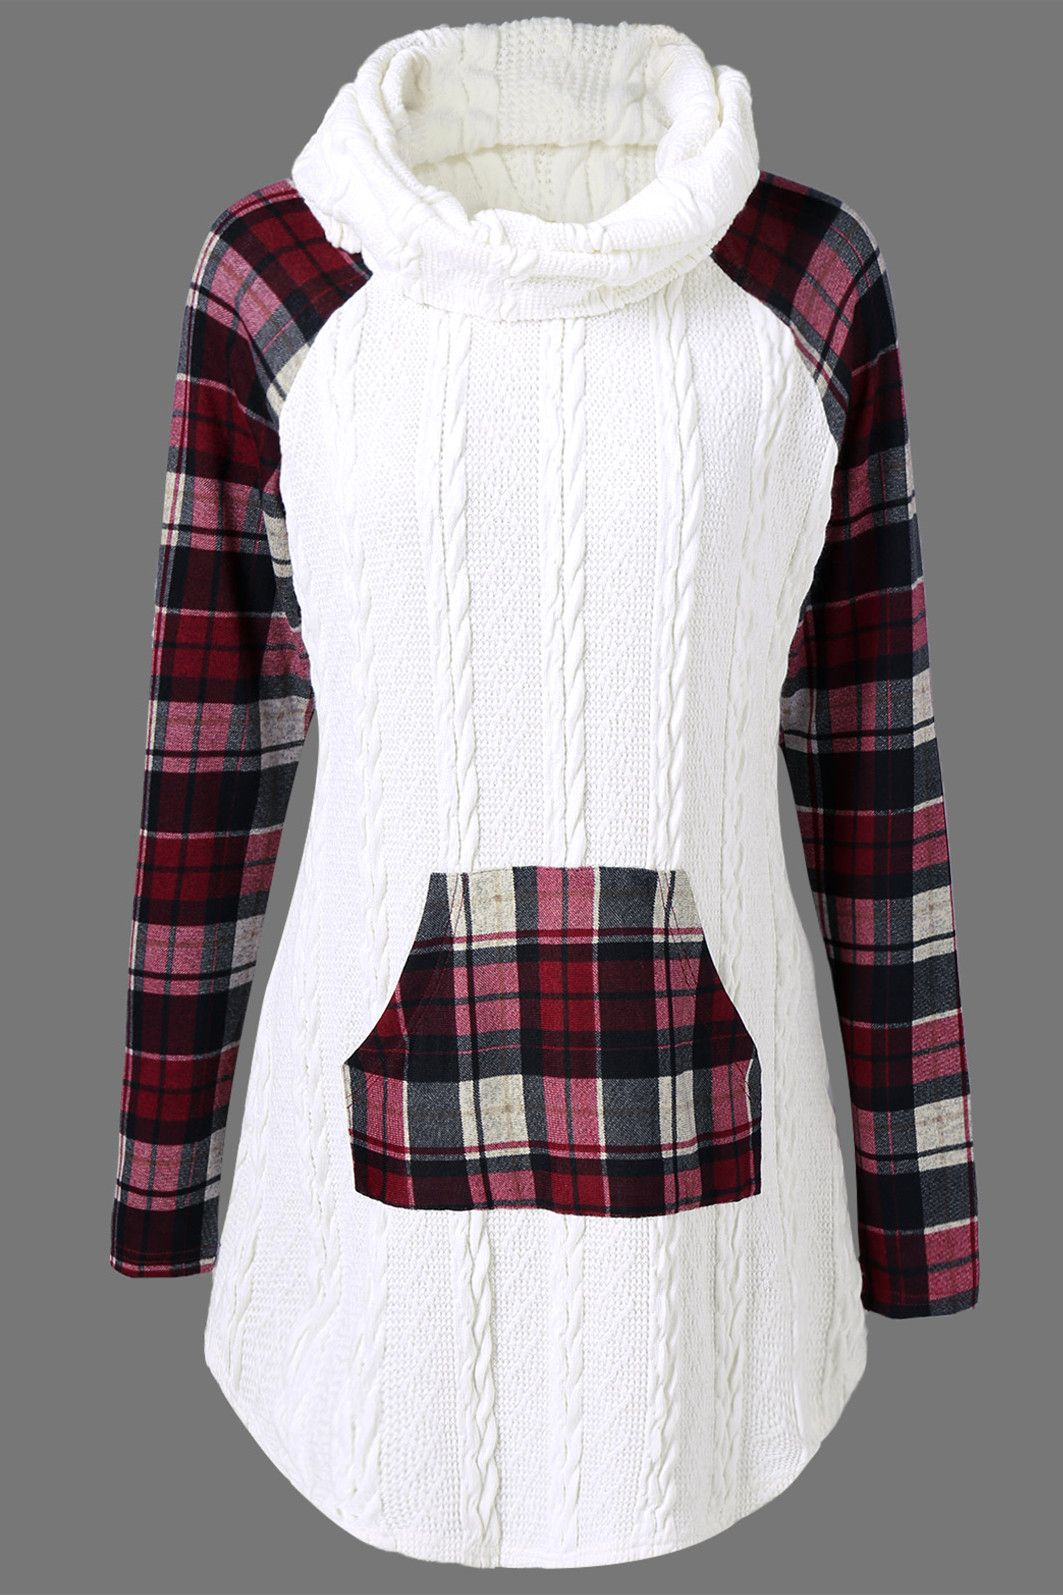 Flannel jacket with elbow patches   Plaid Cable Knit Tunic Sweater  Clothes Shoes Jewelry